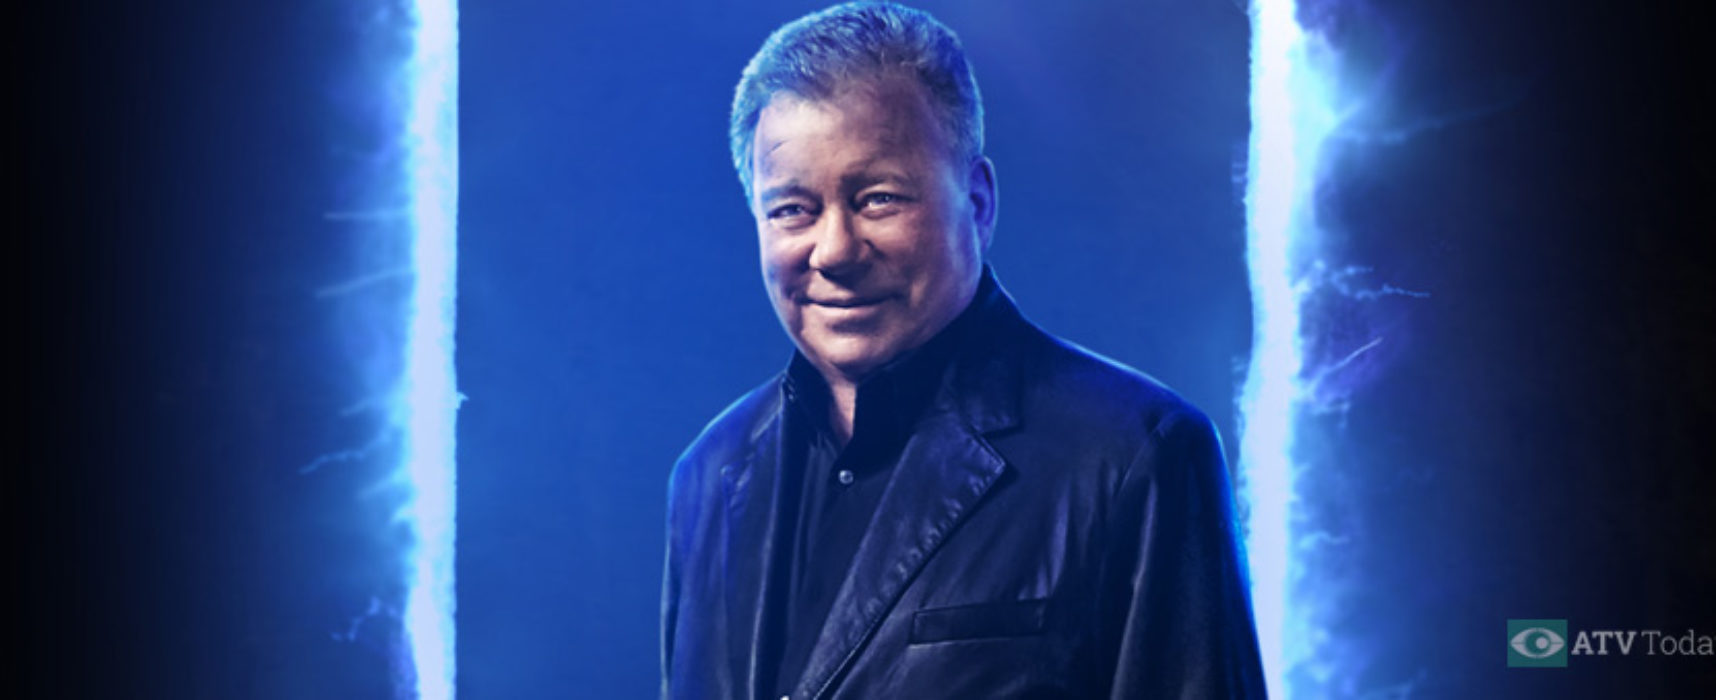 William Shatner talks about latest series The UnXplained